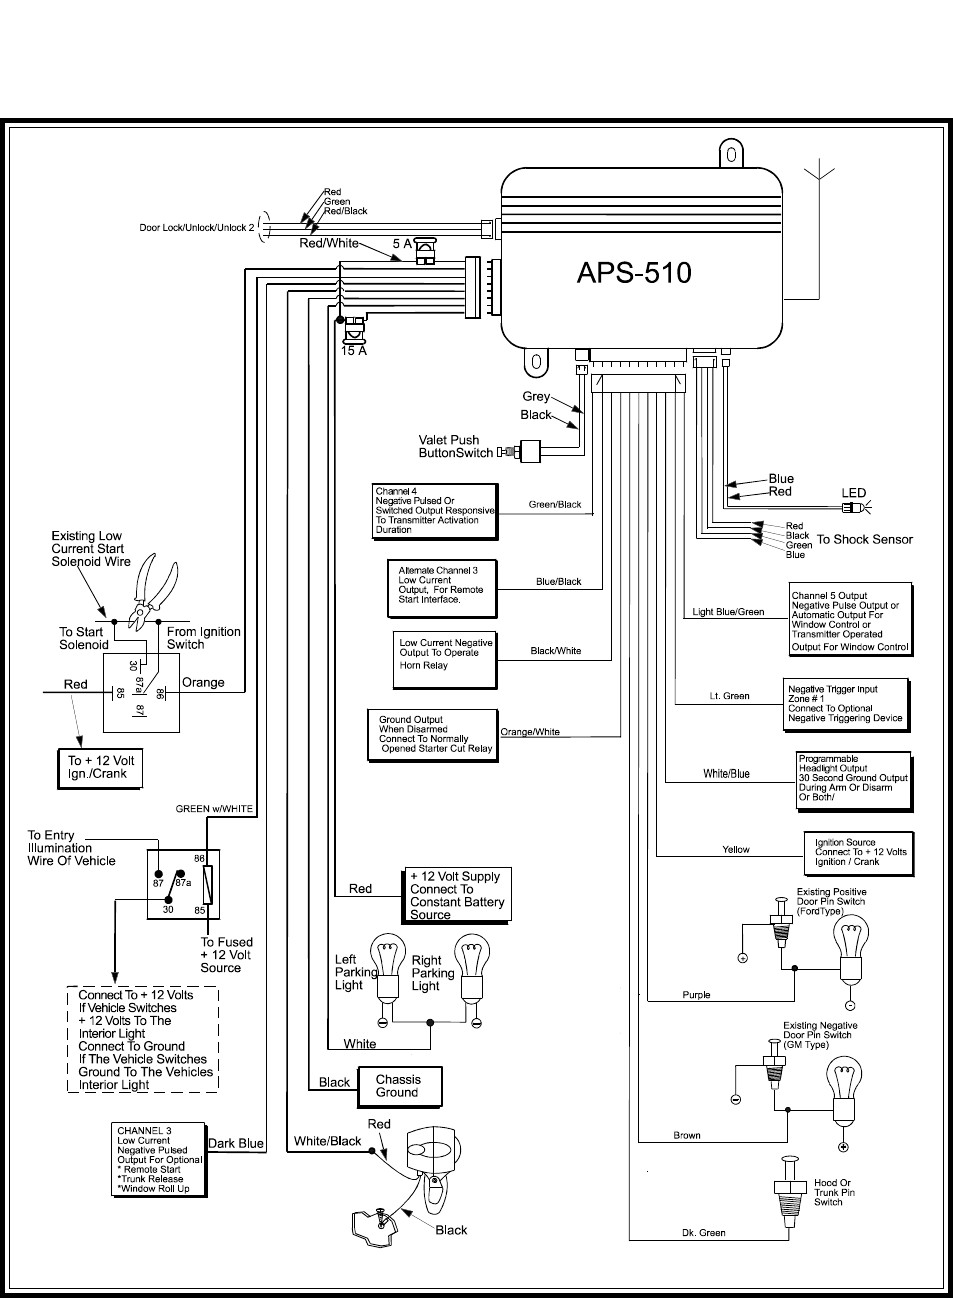 Viper 5901 Wiring Diagram | Wiring Diagram on